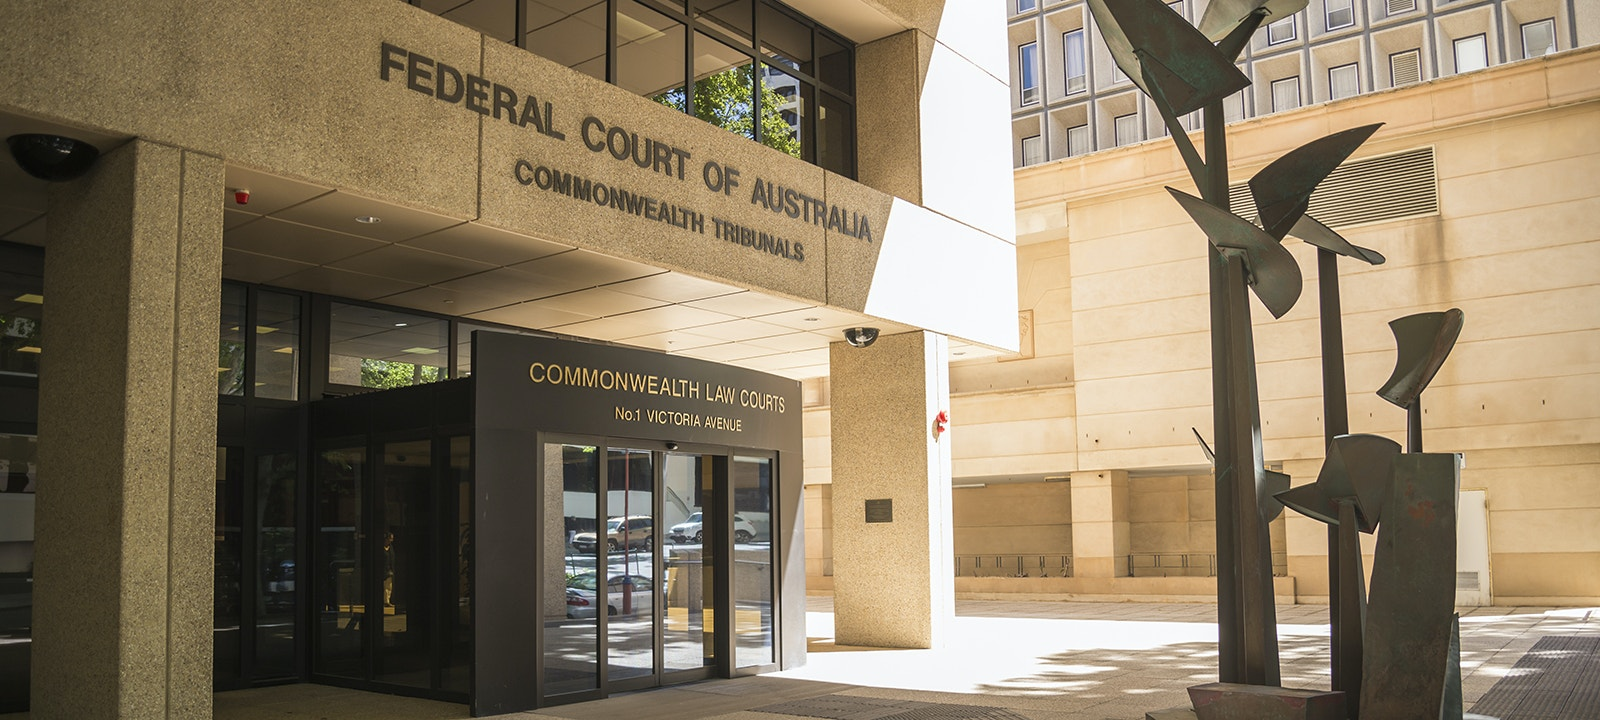 Federal Court Australia   Blog Upload